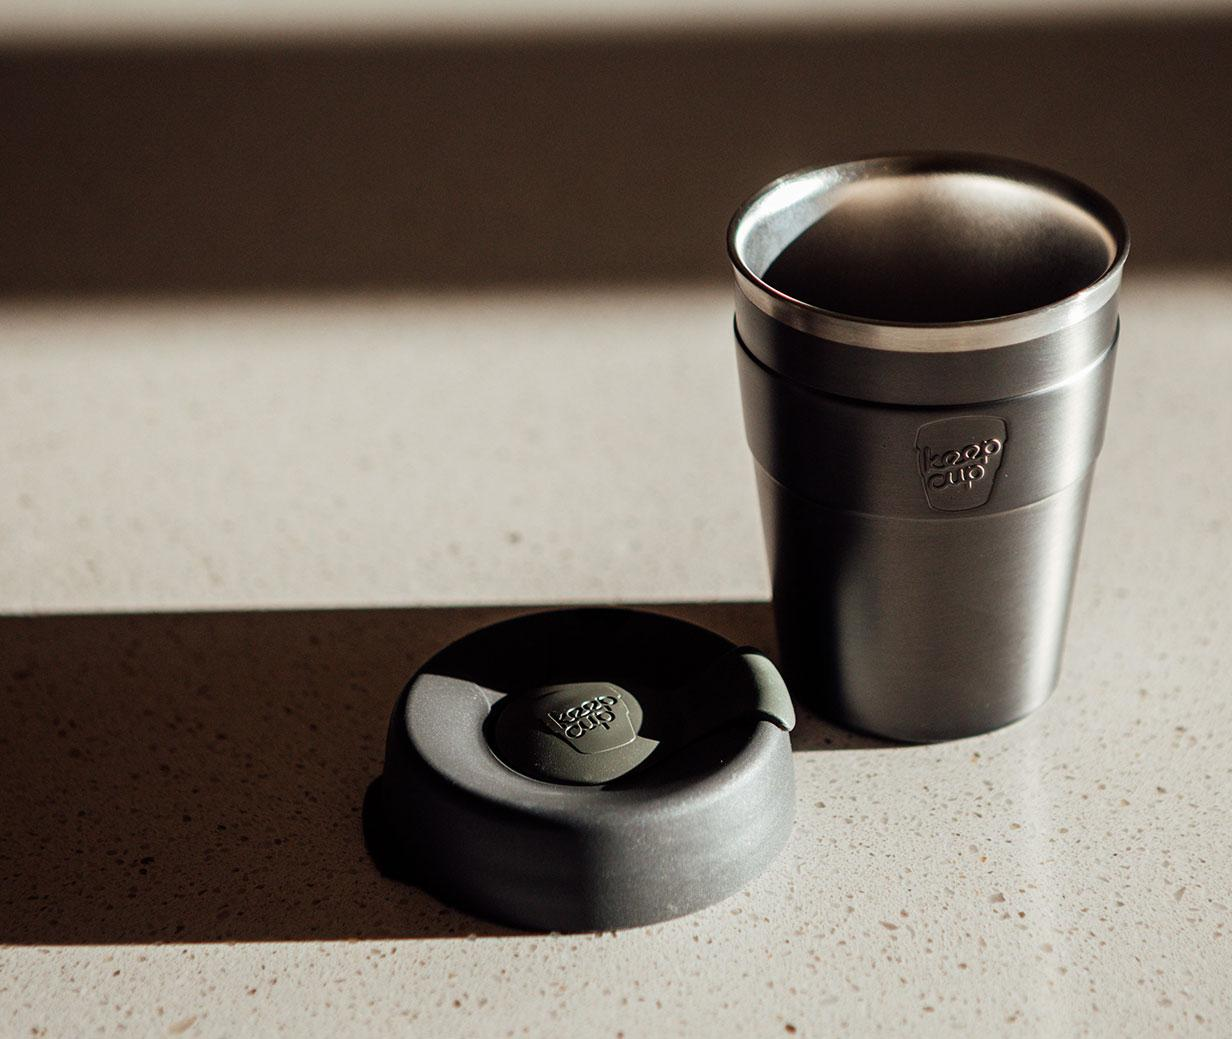 KeepCup Thermal: The lowdown